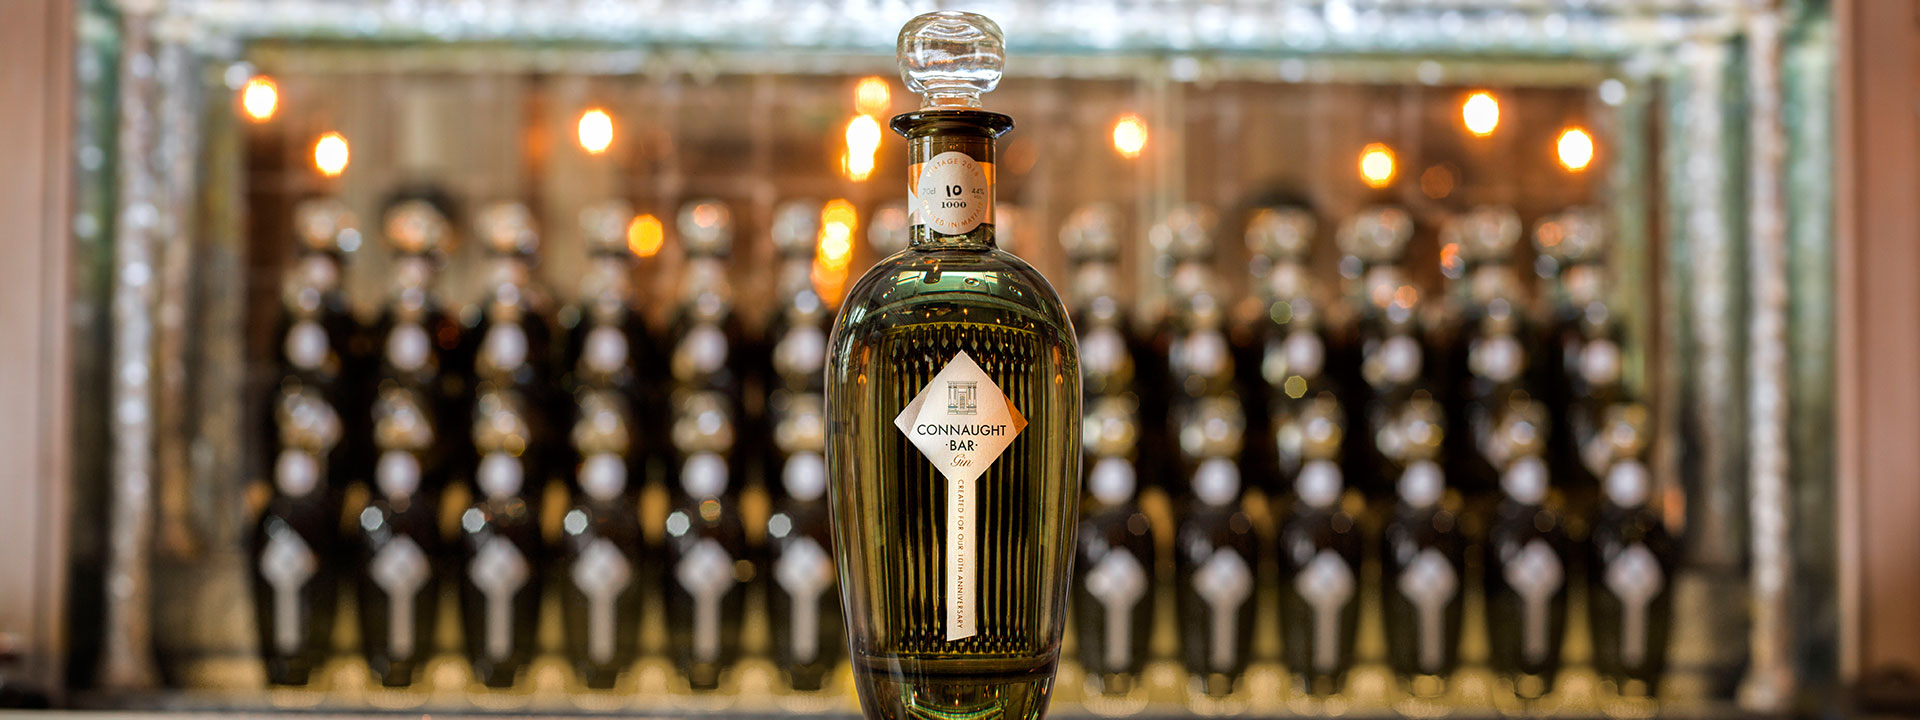 Bottle of gin on marble counter at The Connaught Bar in Mayfair